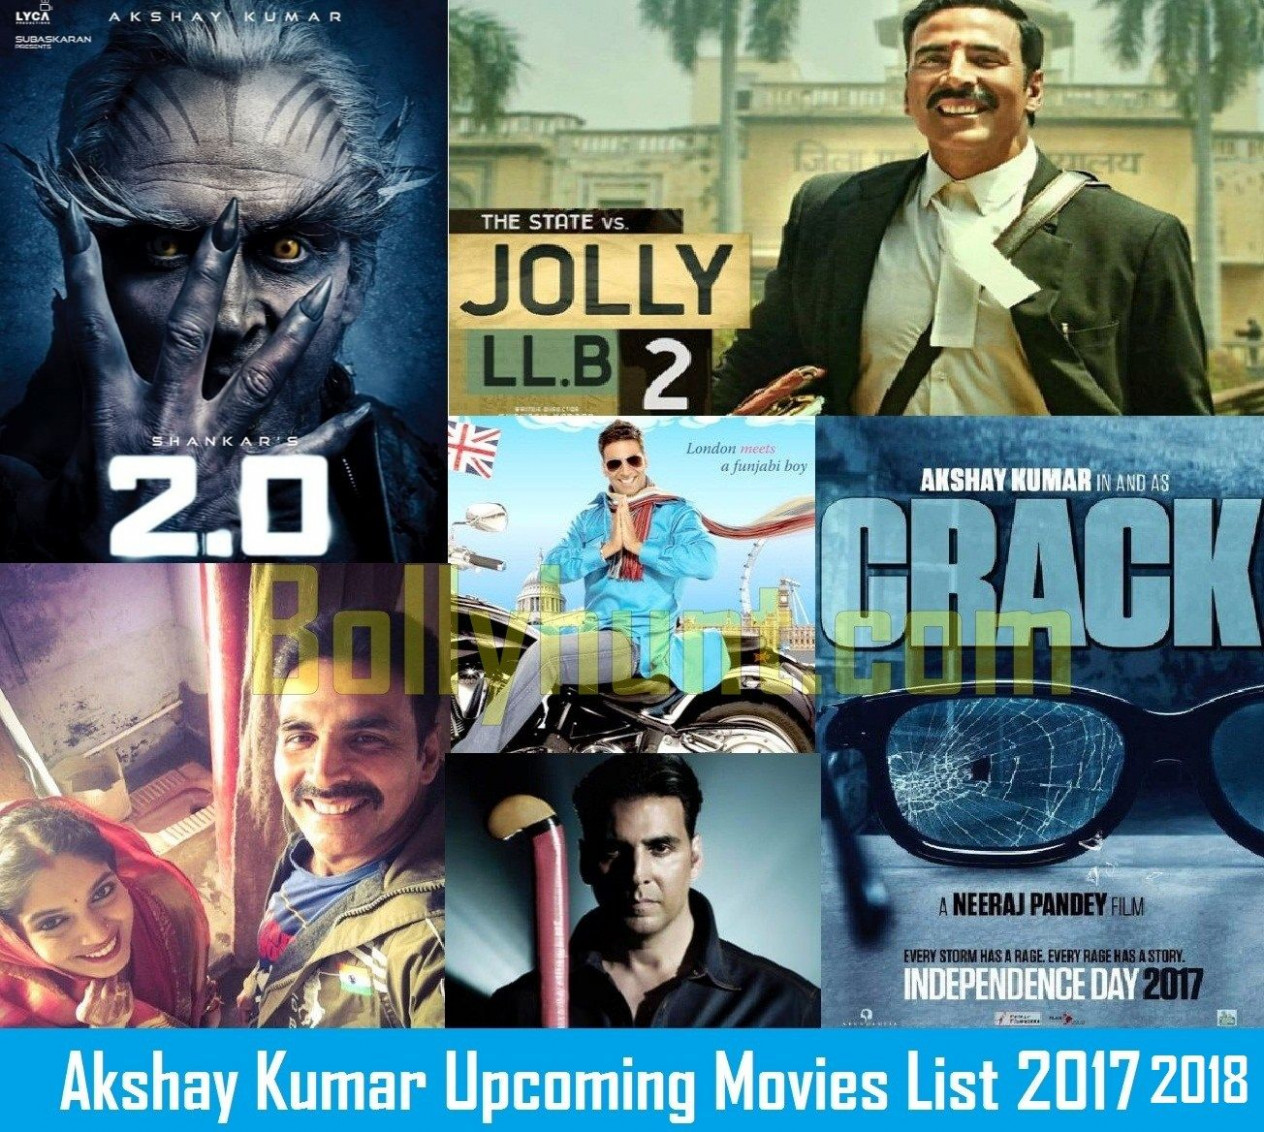 akshay kumar upcoming movies 2017 2018 with release date ..